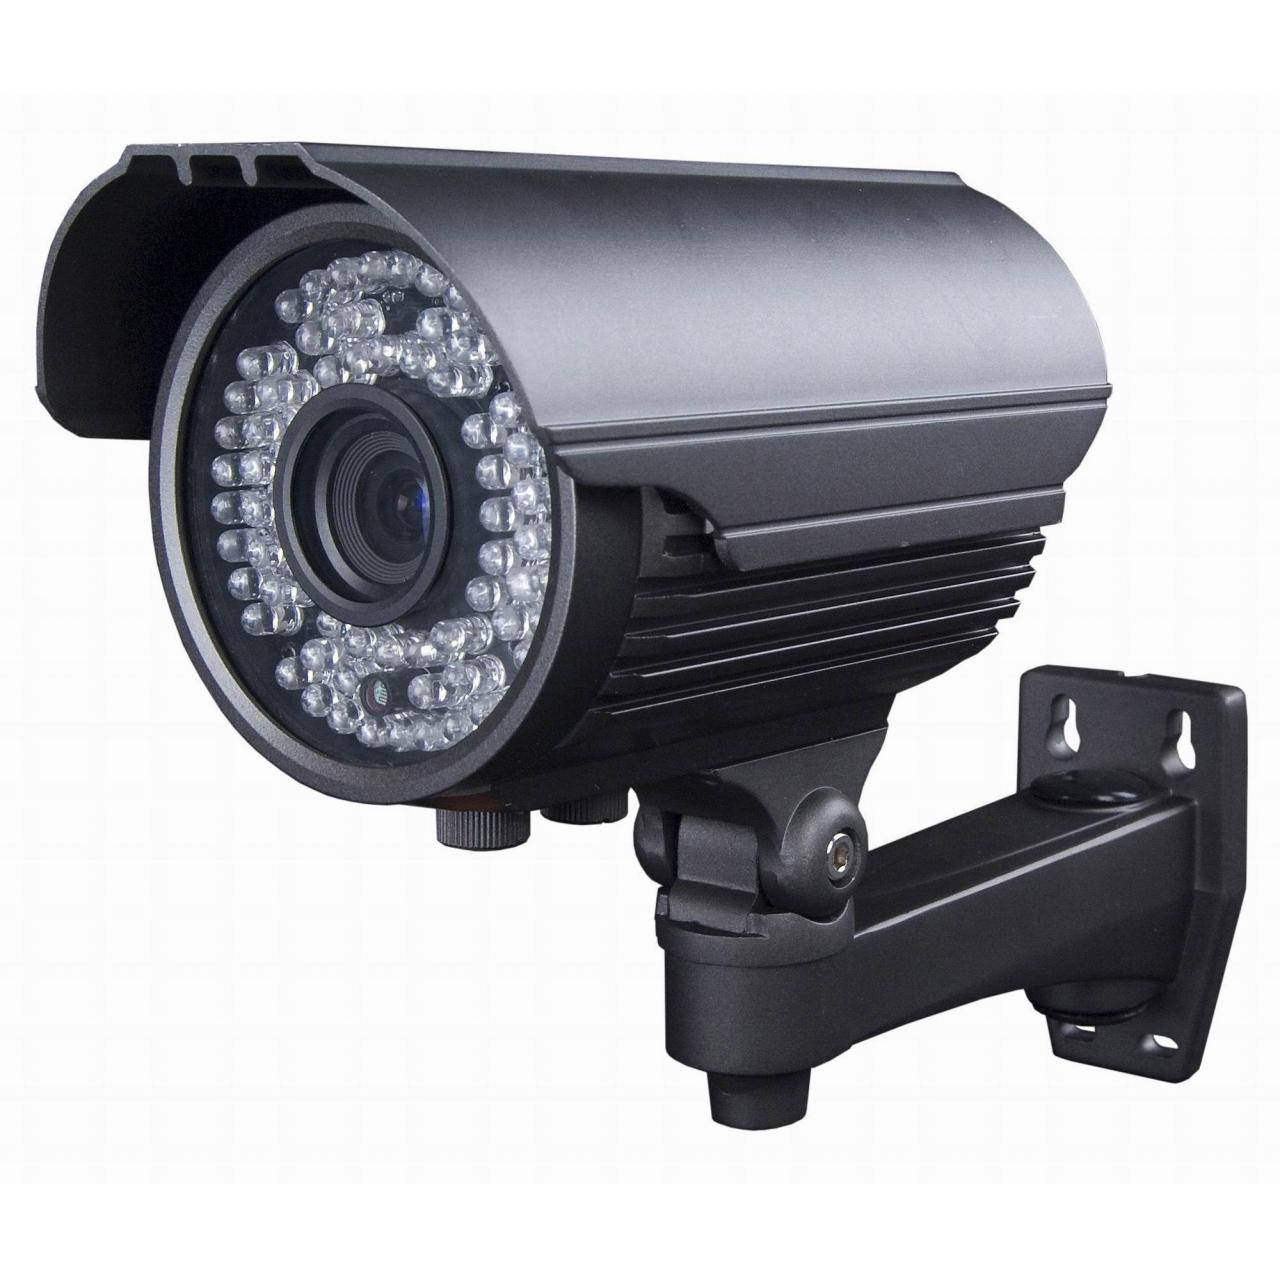 Quality CAMERA OUTDOOR SECURITY for sale